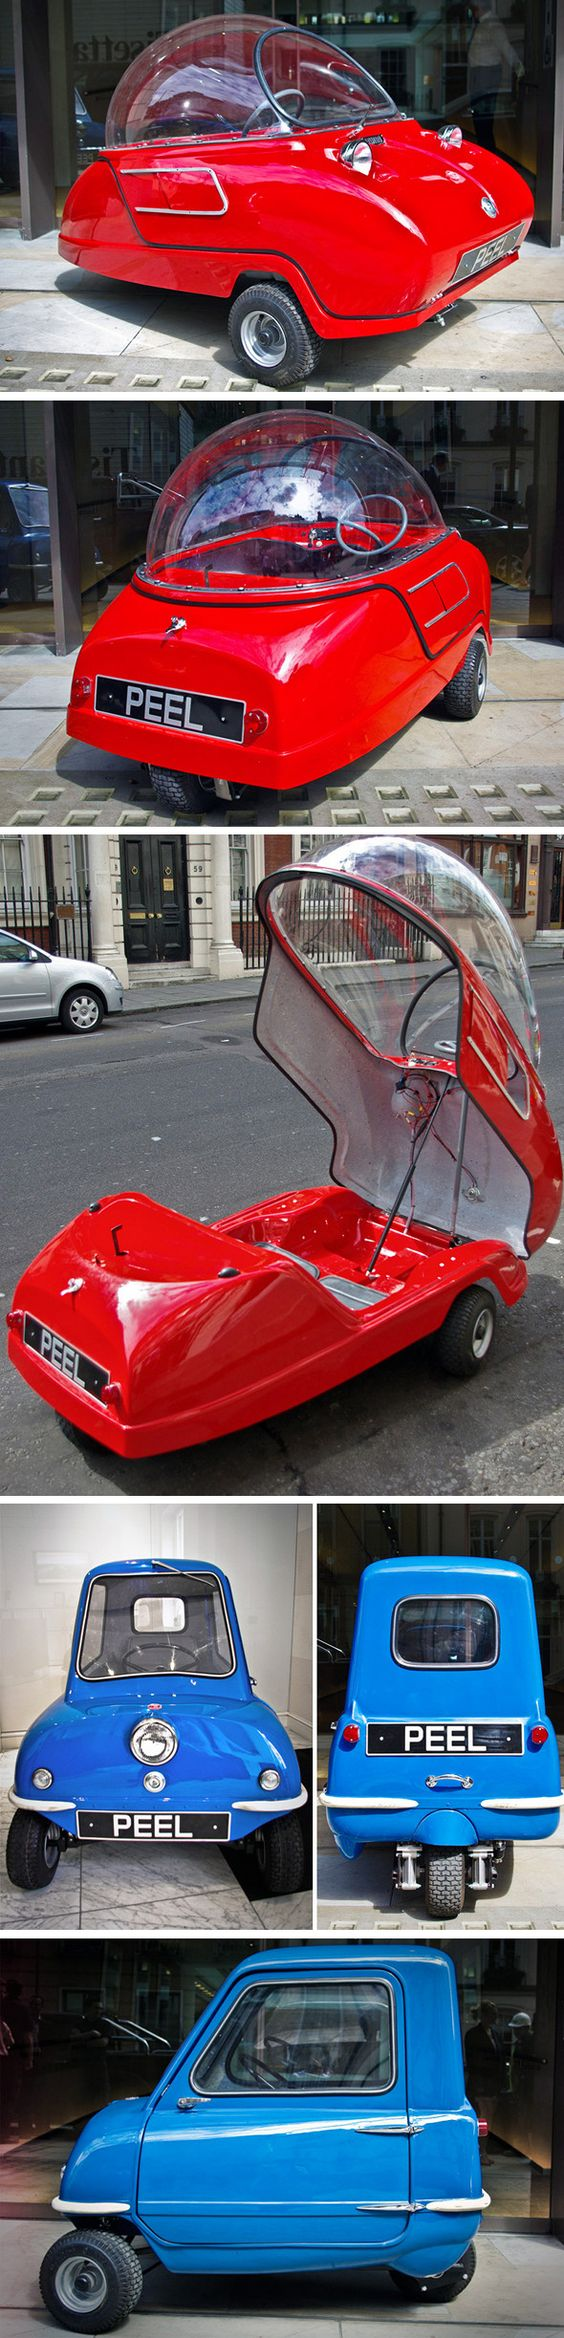 "Peel Engineering typically more than 95% of a car's energy is used just to move itself, The Carless Class is defined by eliminating this old fashioned ""car equation."" Vehicles in The Carless Class still have a full fairing but often just 3 wheels, some have pedal and most have electric assist."